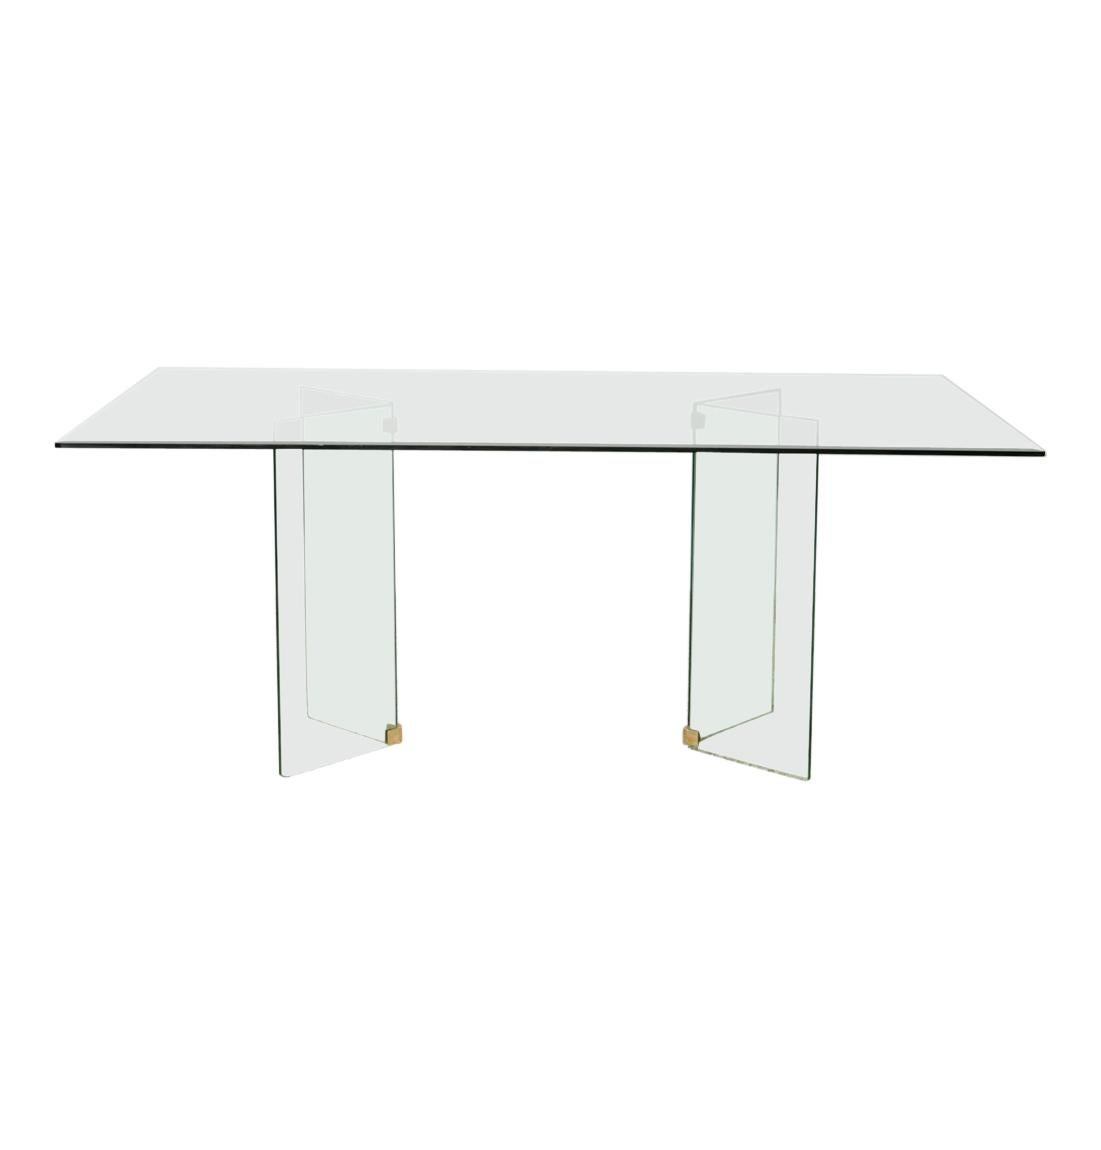 1980s Glass Dining Table Seats 6-8 People in Style of Pace Collection